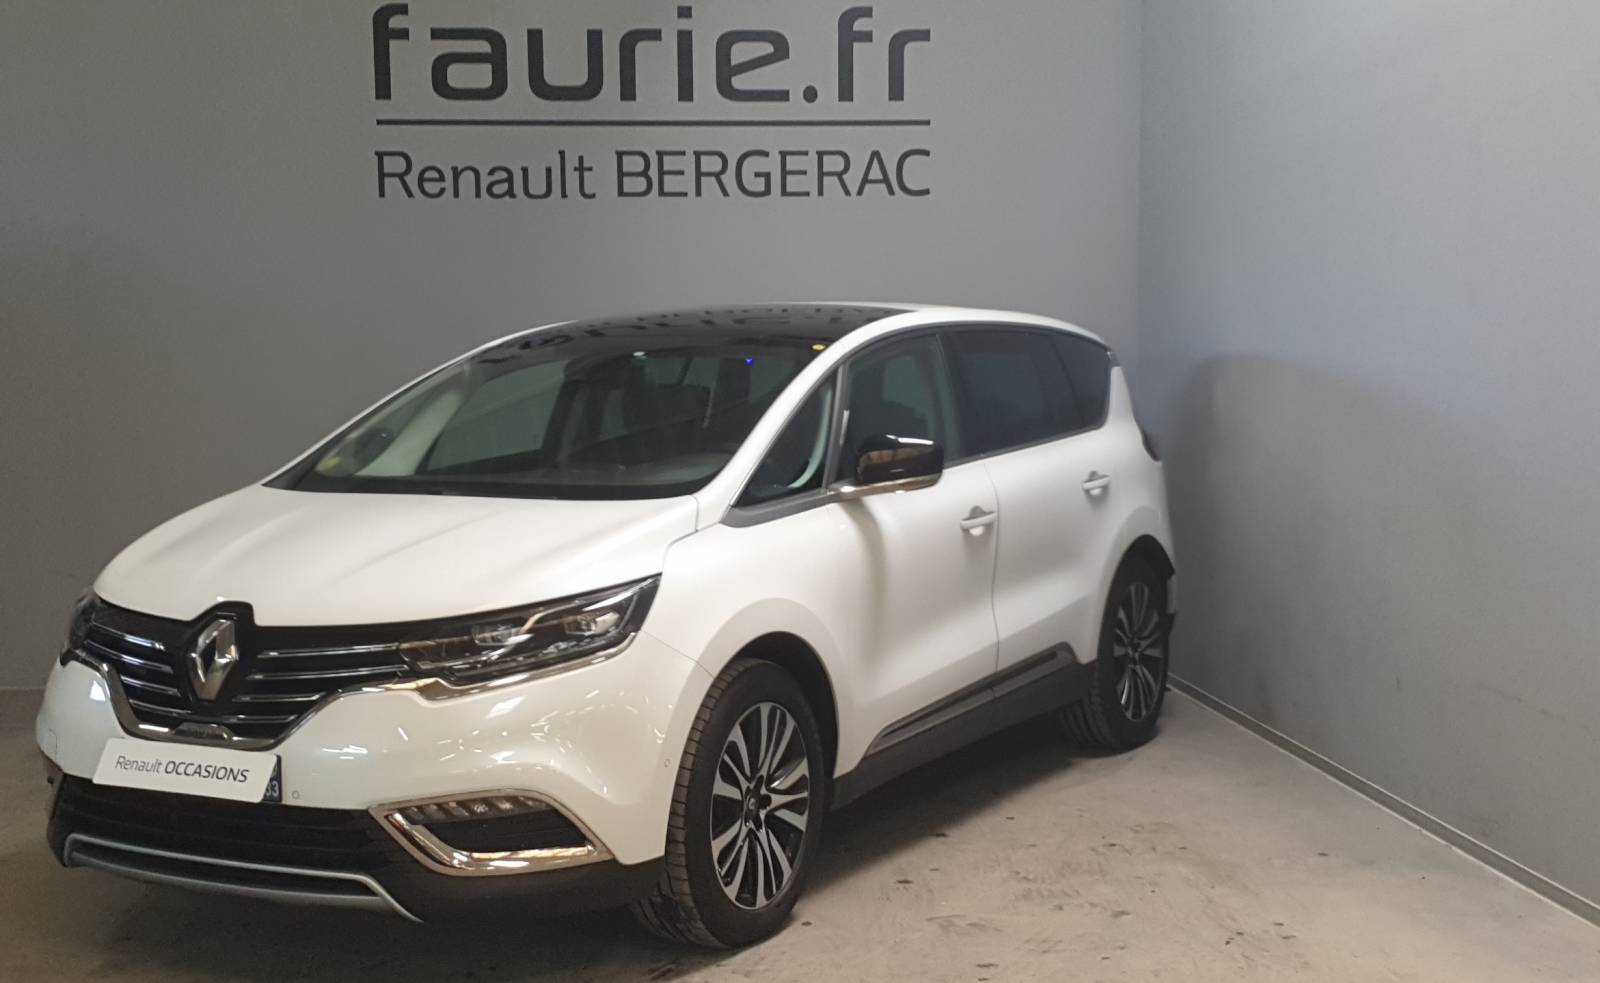 RENAULT Espace dCi 160 Energy Twin Turbo - véhicule d'occasion - Site Internet Faurie - Renault - Faurie Auto Bergerac - 24100 - Bergerac - 1